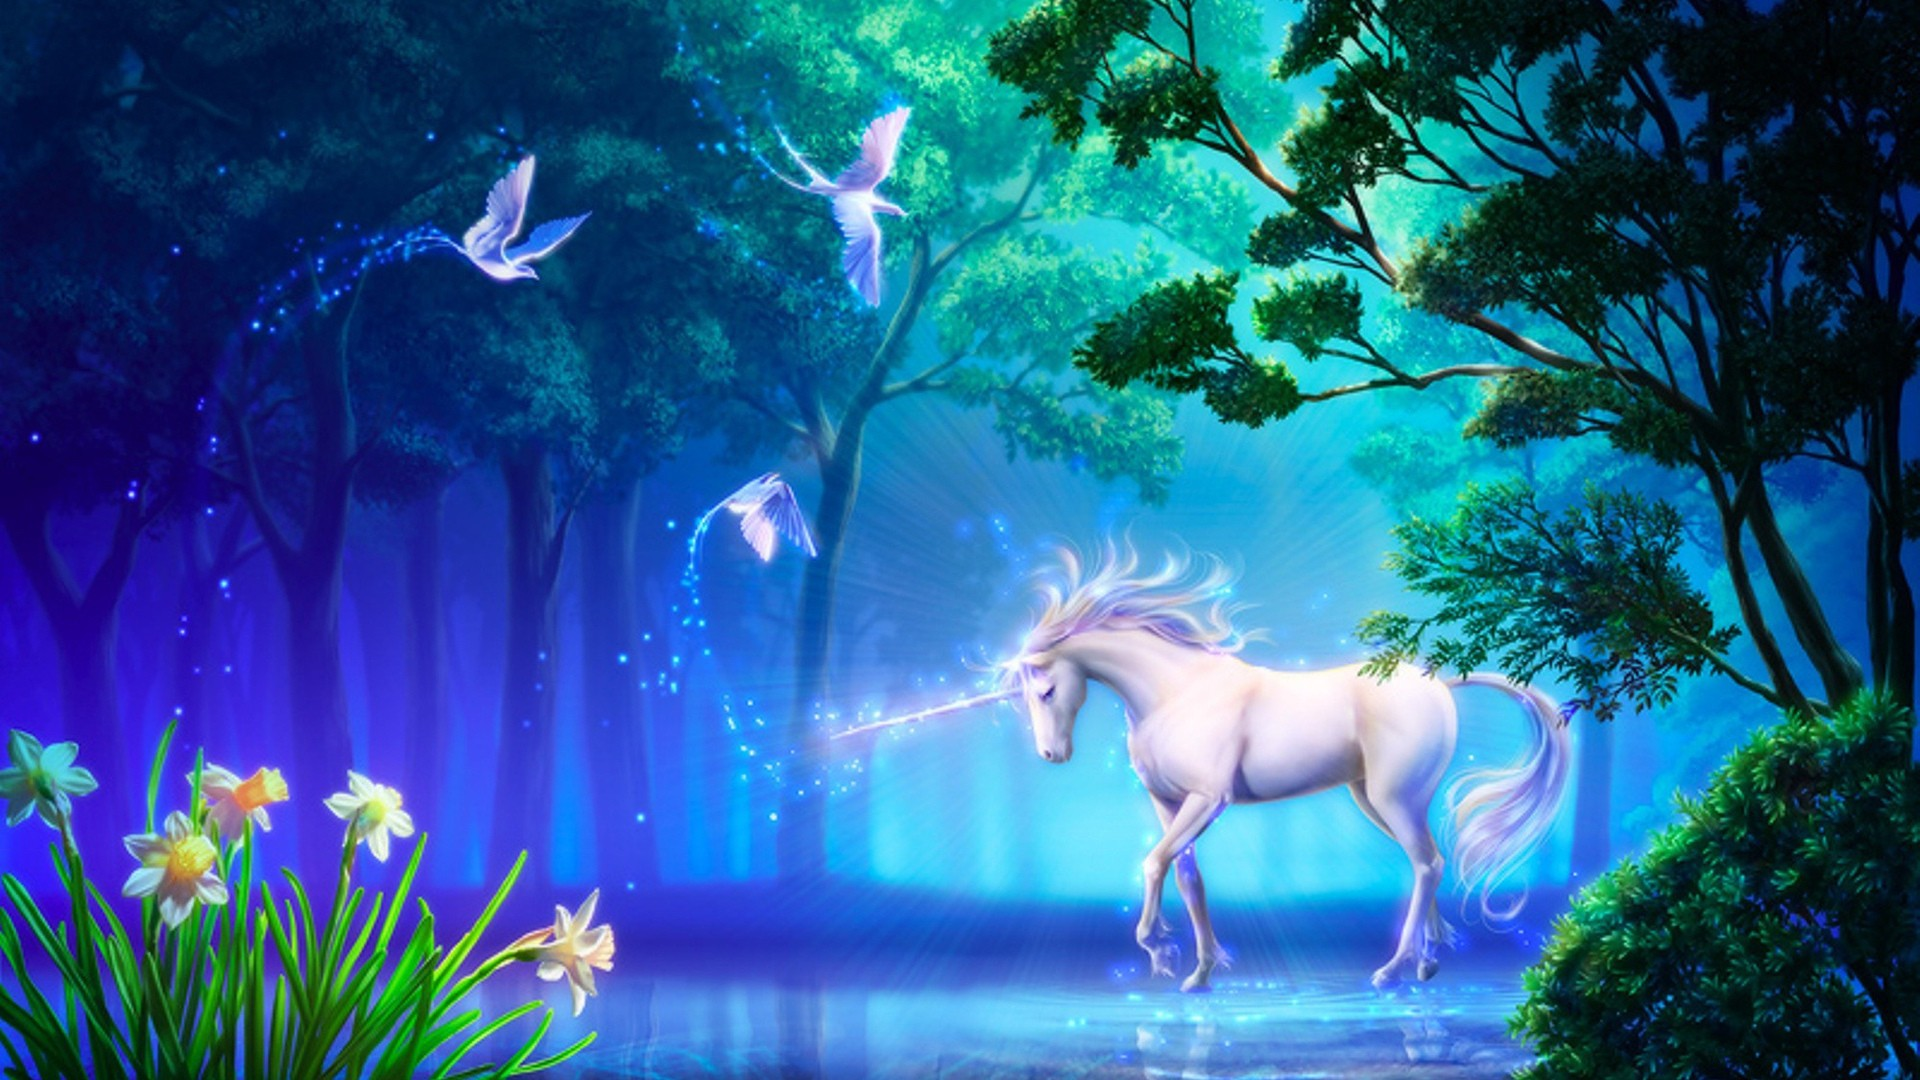 Full Screen Desktop Fall Wallpaper Unicorn Wallpapers Hd Pixelstalk Net